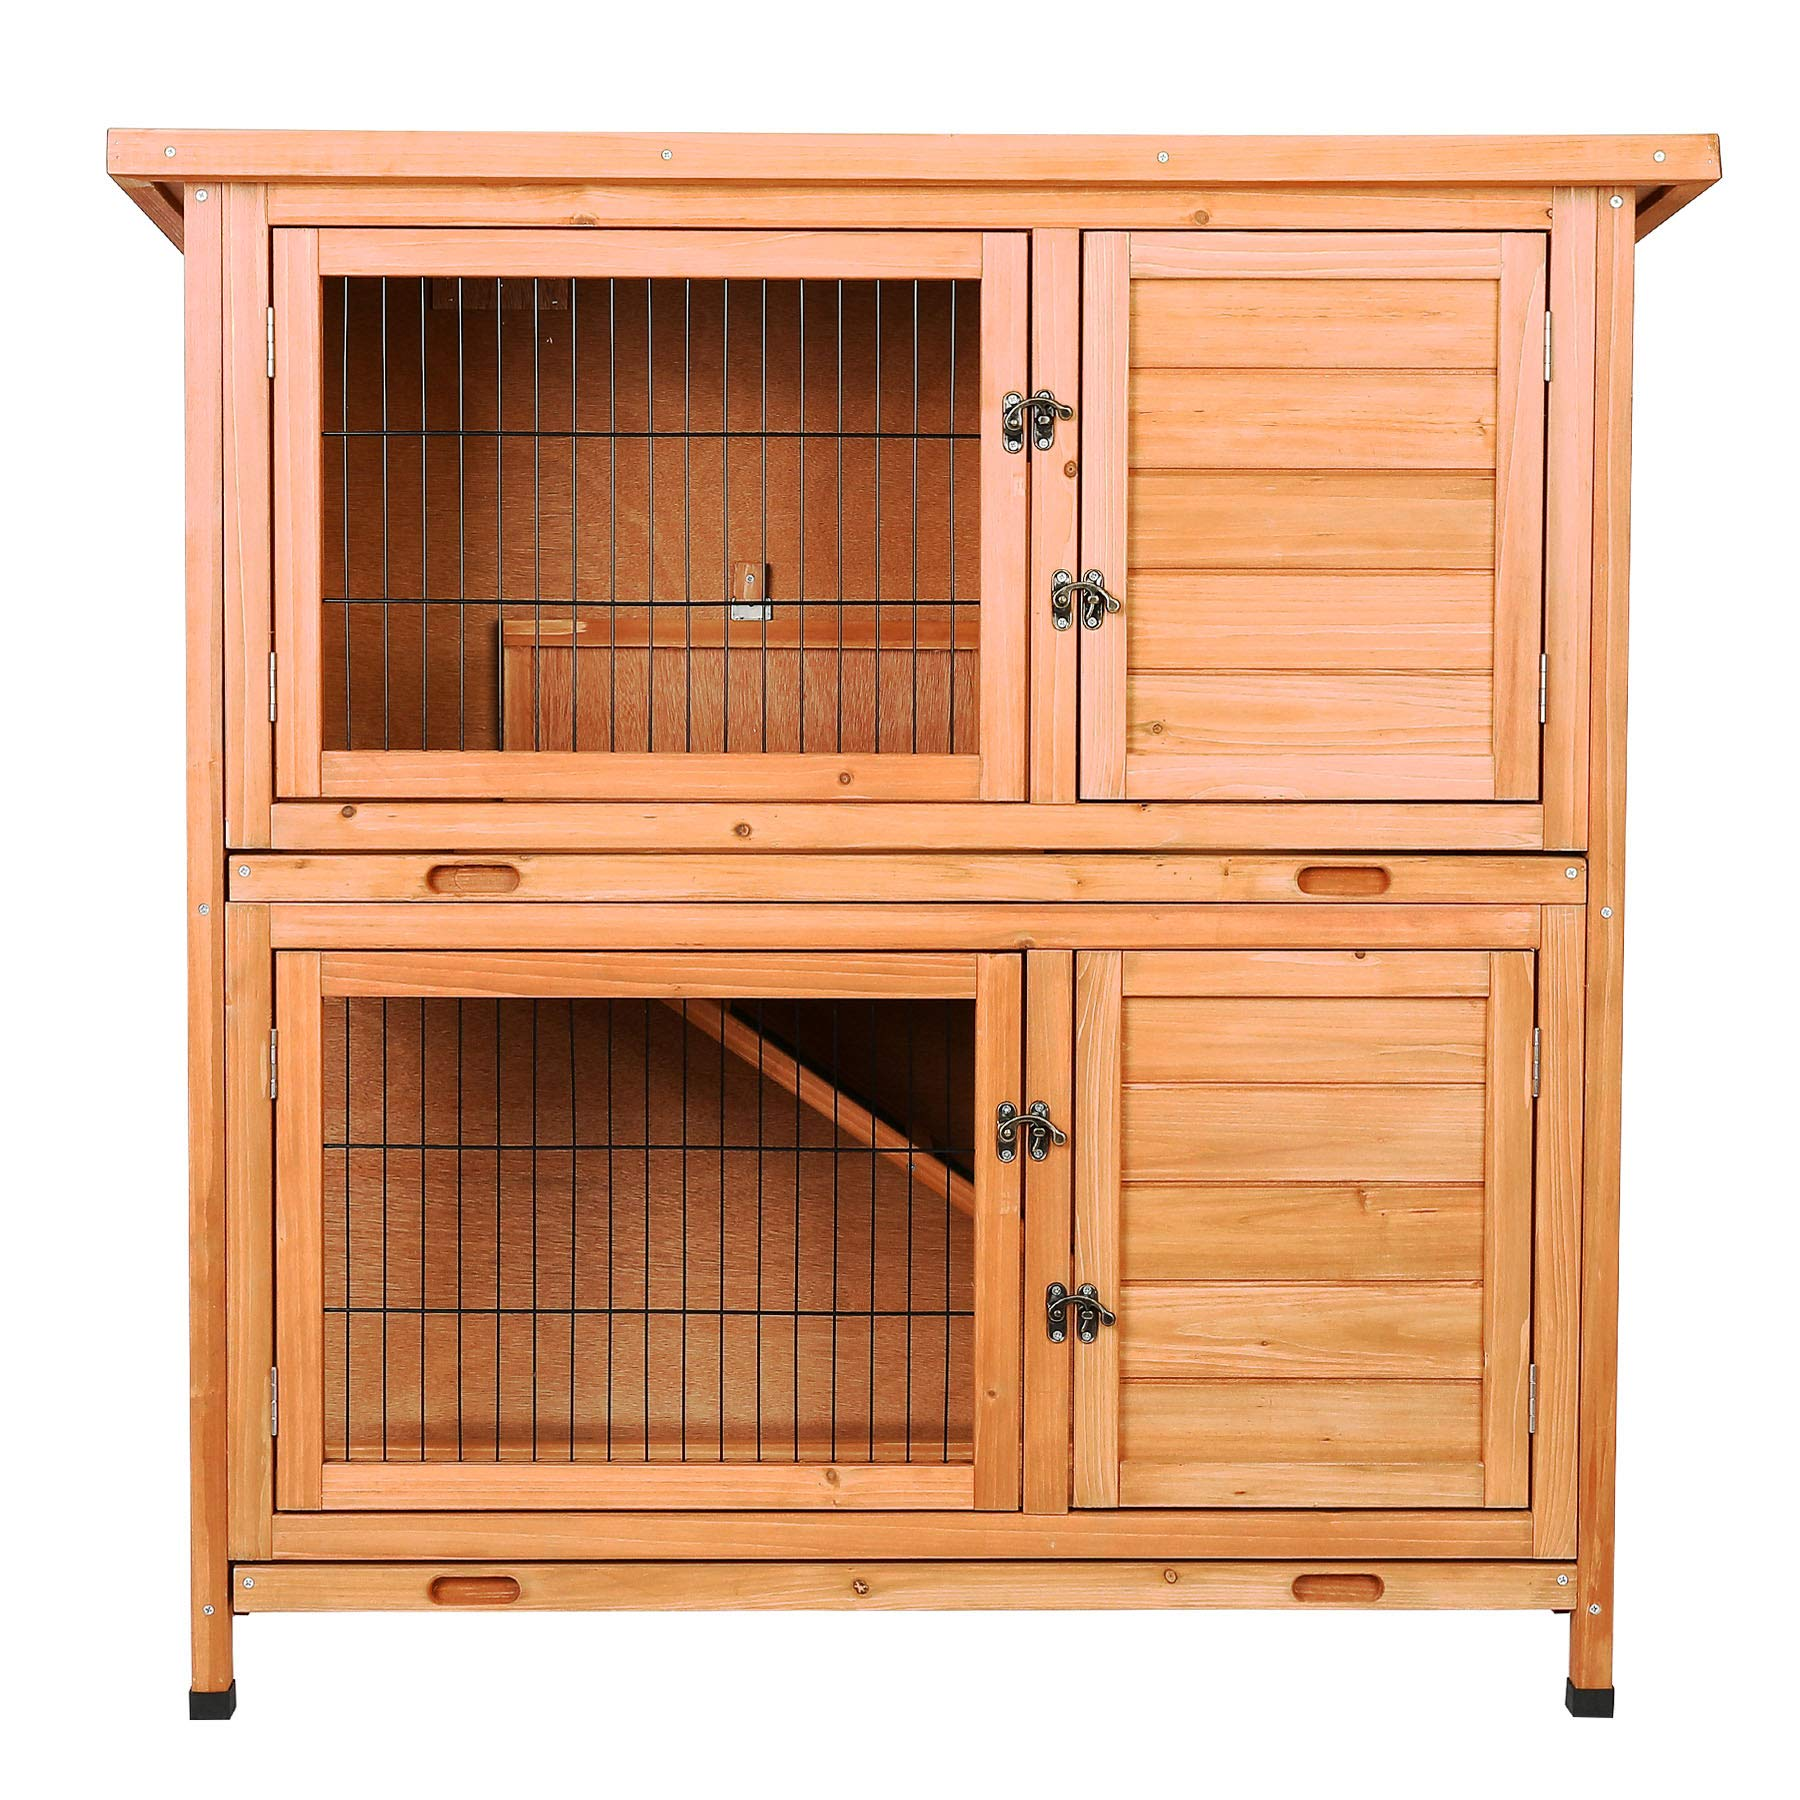 CO-Z 2 Story Outdoor Wooden Bunny Cage Rabbit Hutch Guinea Pig House in Nature Color with Ladder for Small Animals by CO-Z